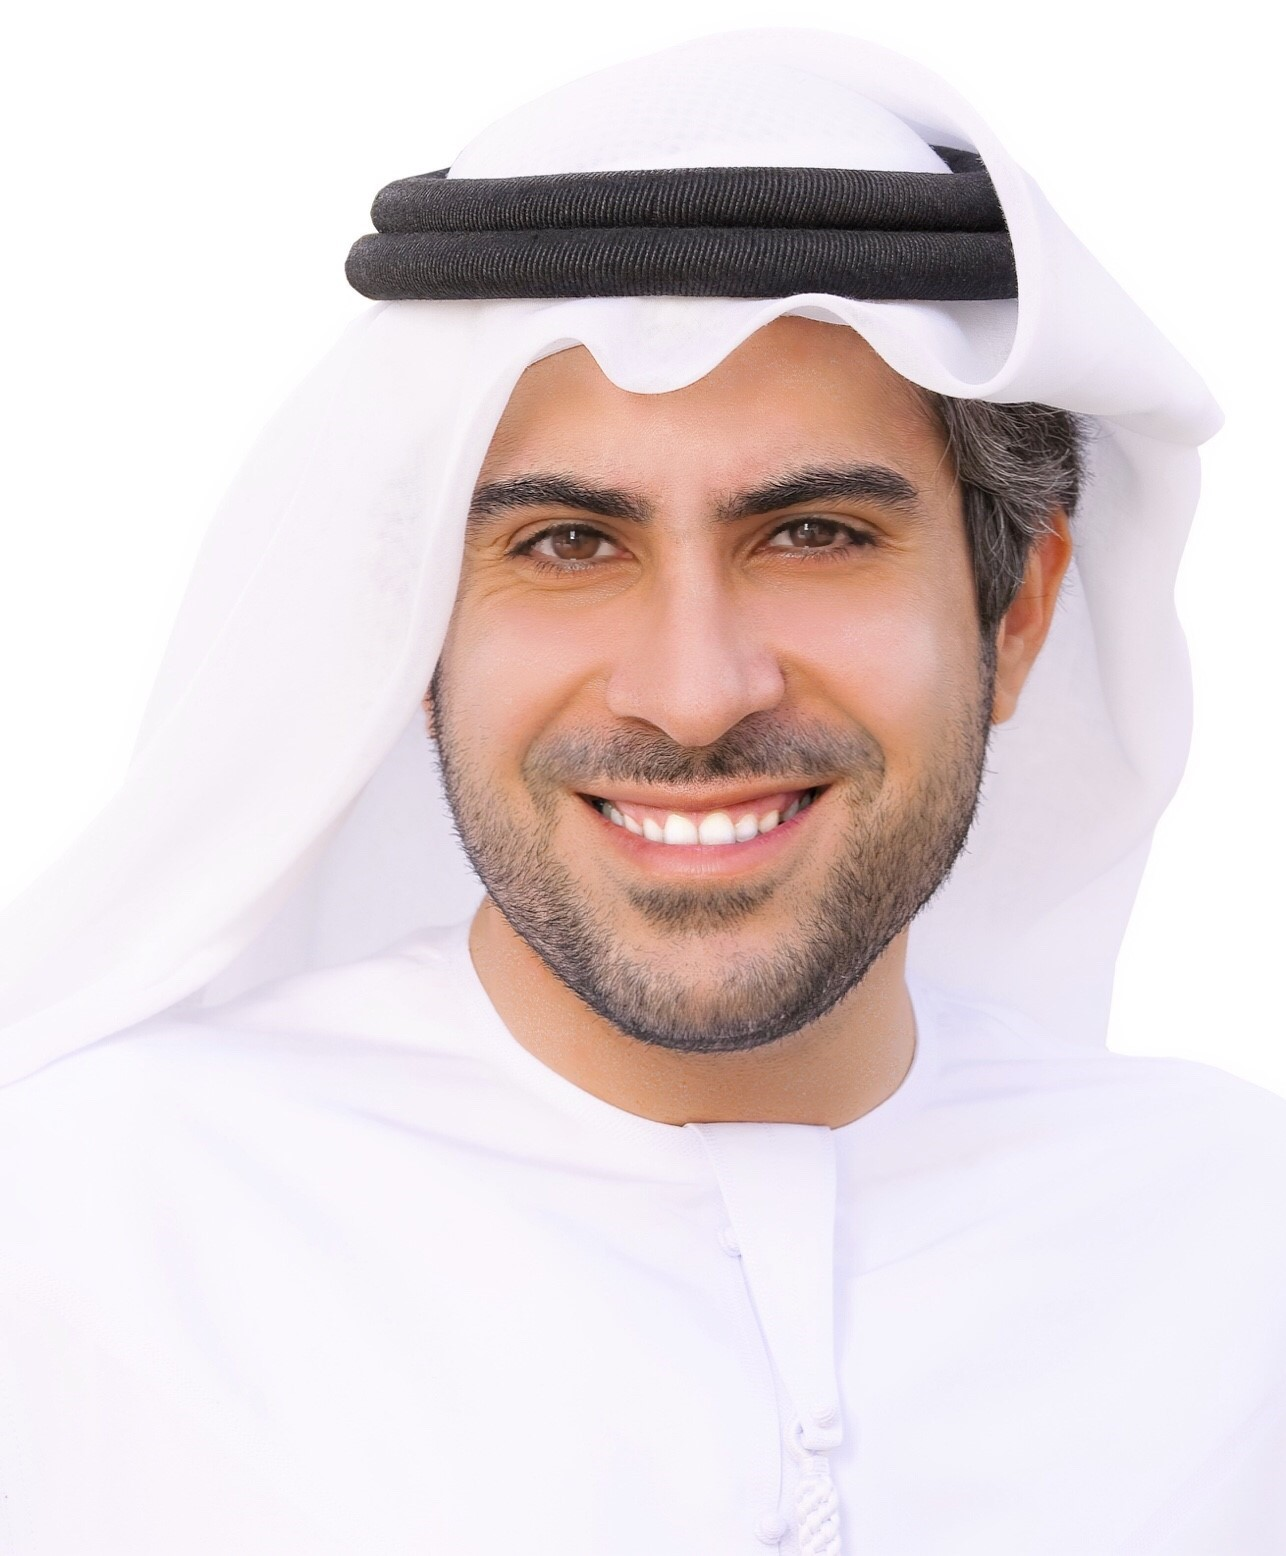 Mr. Badr Al Olama